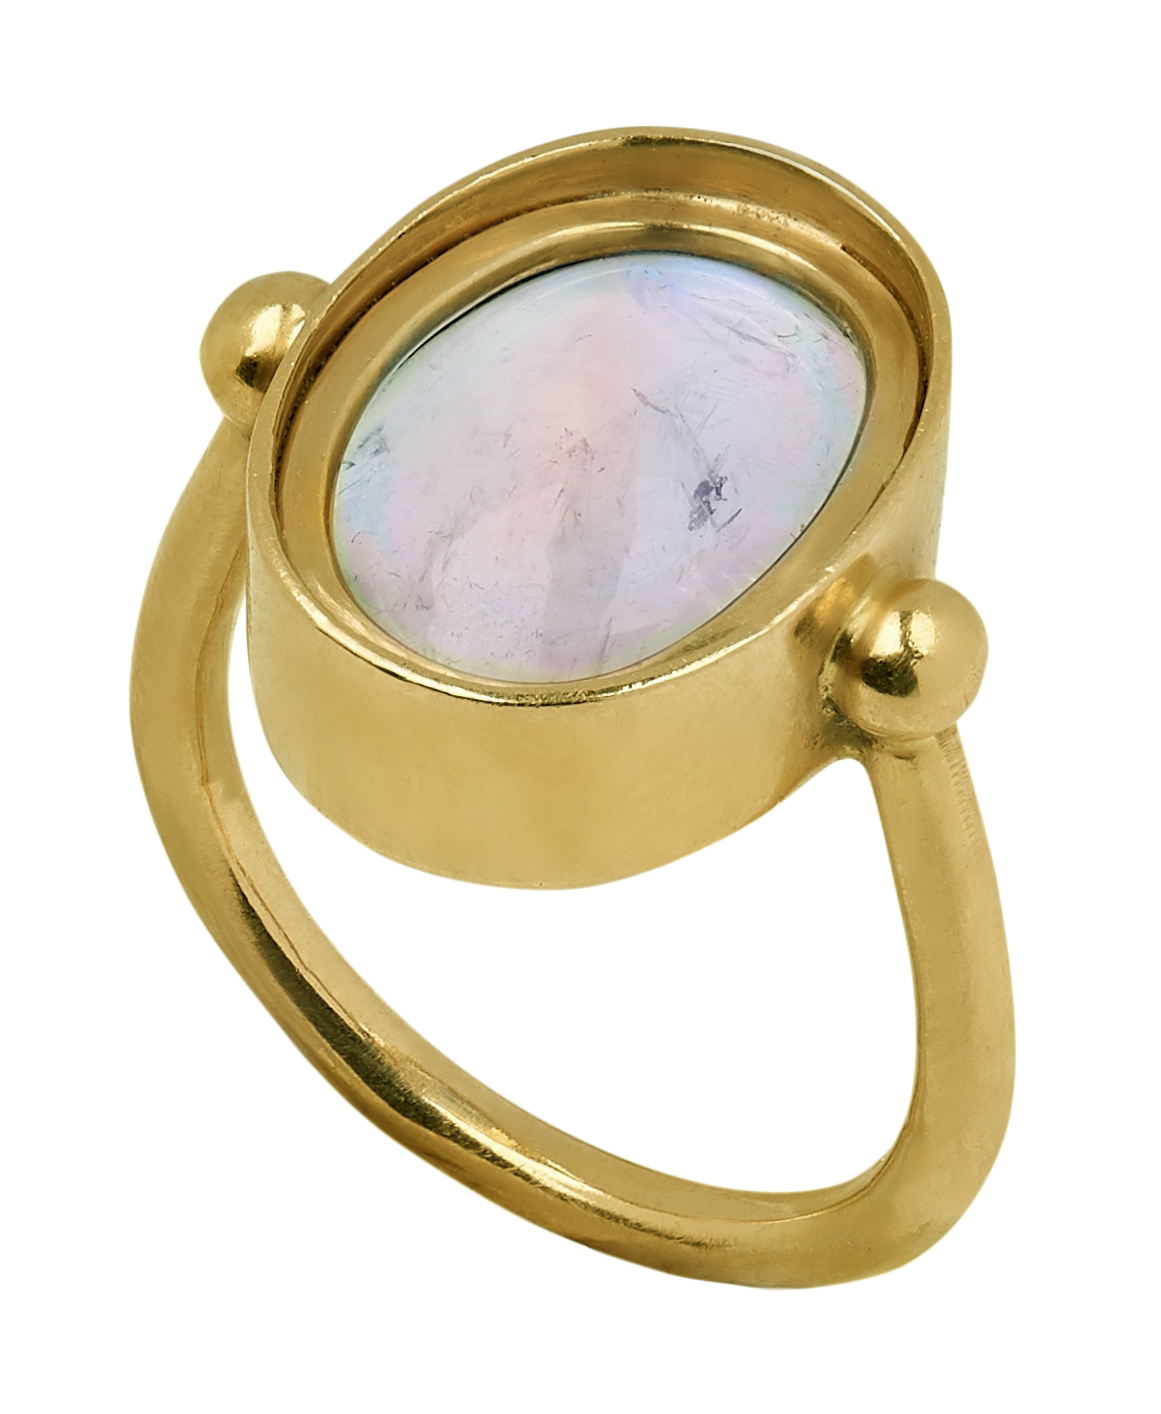 18ct gold oval cabochon rainbow moonstone ring, hallmarked, free UK mainland shipping available on - Image 4 of 4